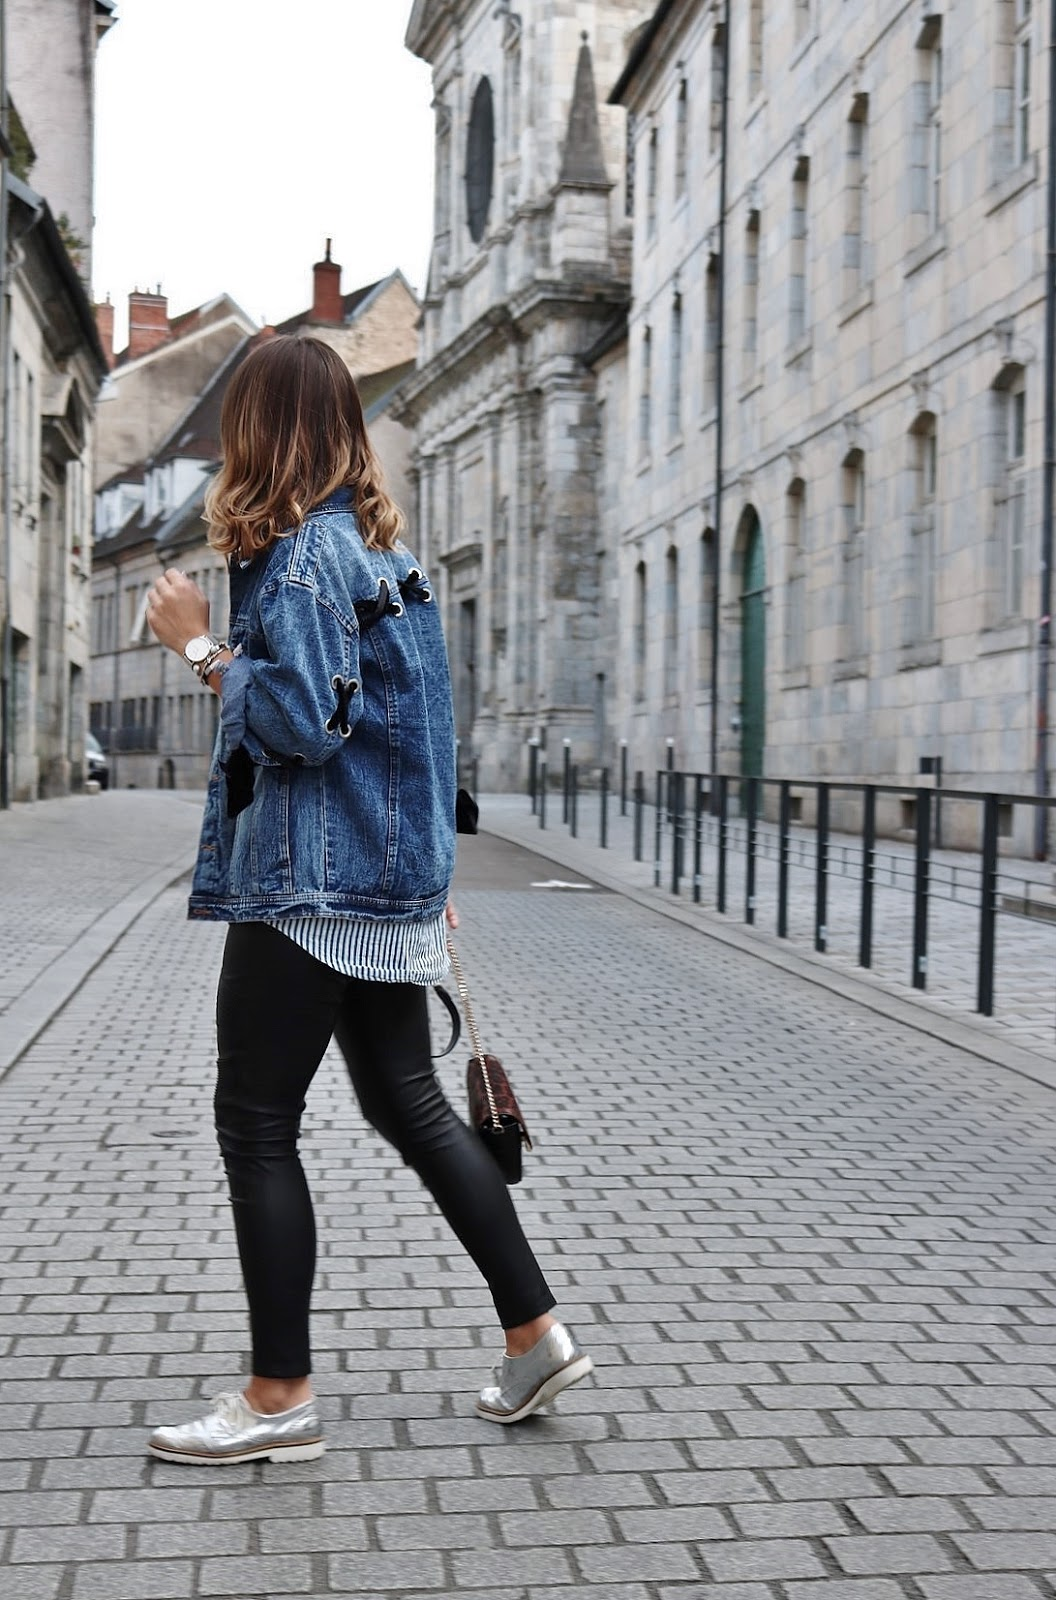 pauline-dress-tenue-look-besancon-veste-denim-lace-up-noir-tregging-chemise-rayee-sac-leo-zoom-marche